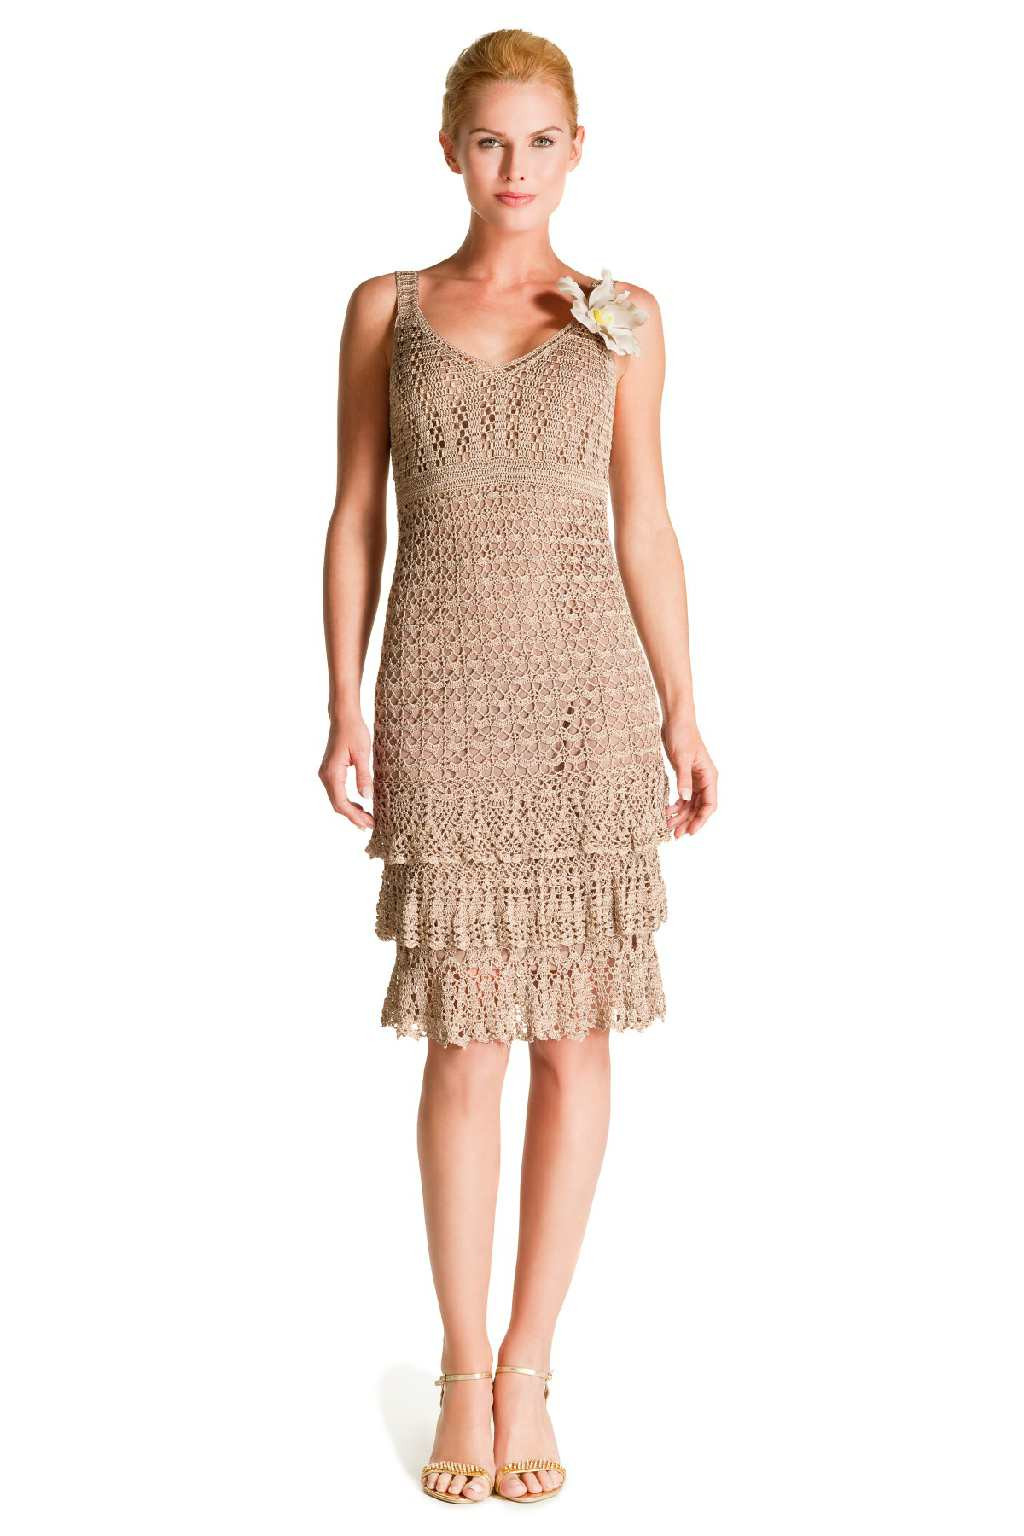 Crochet Clothing Unique Crinochet Beautiful Crochet Dresses for Inspiration Of Awesome 49 Images Crochet Clothing